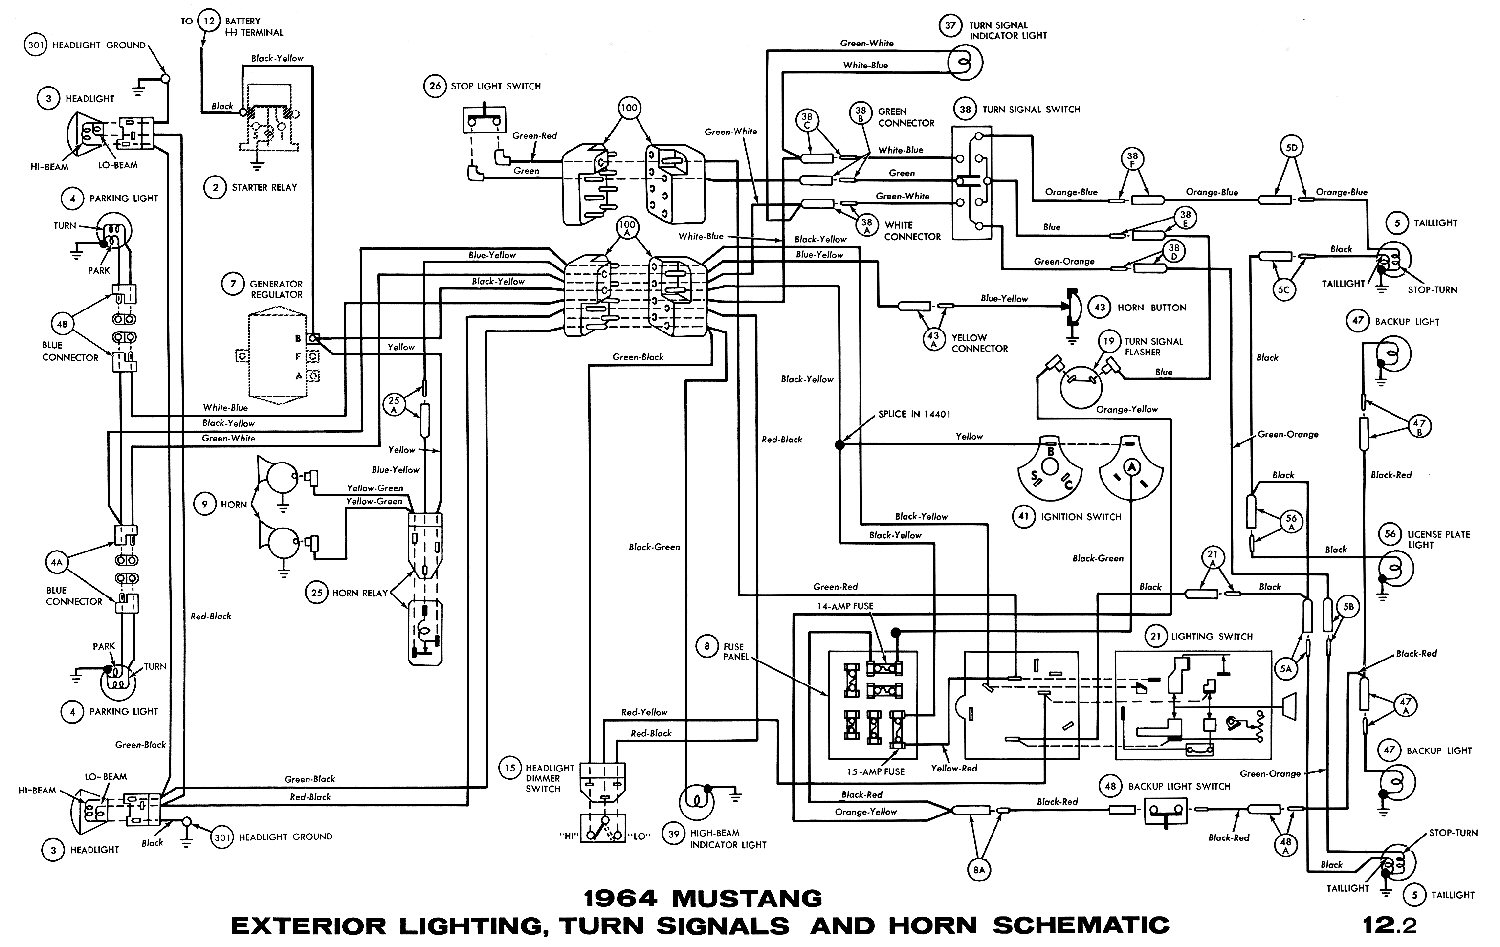 1964i 1964 mustang wiring diagrams average joe restoration 66 mustang wiring diagram at nearapp.co